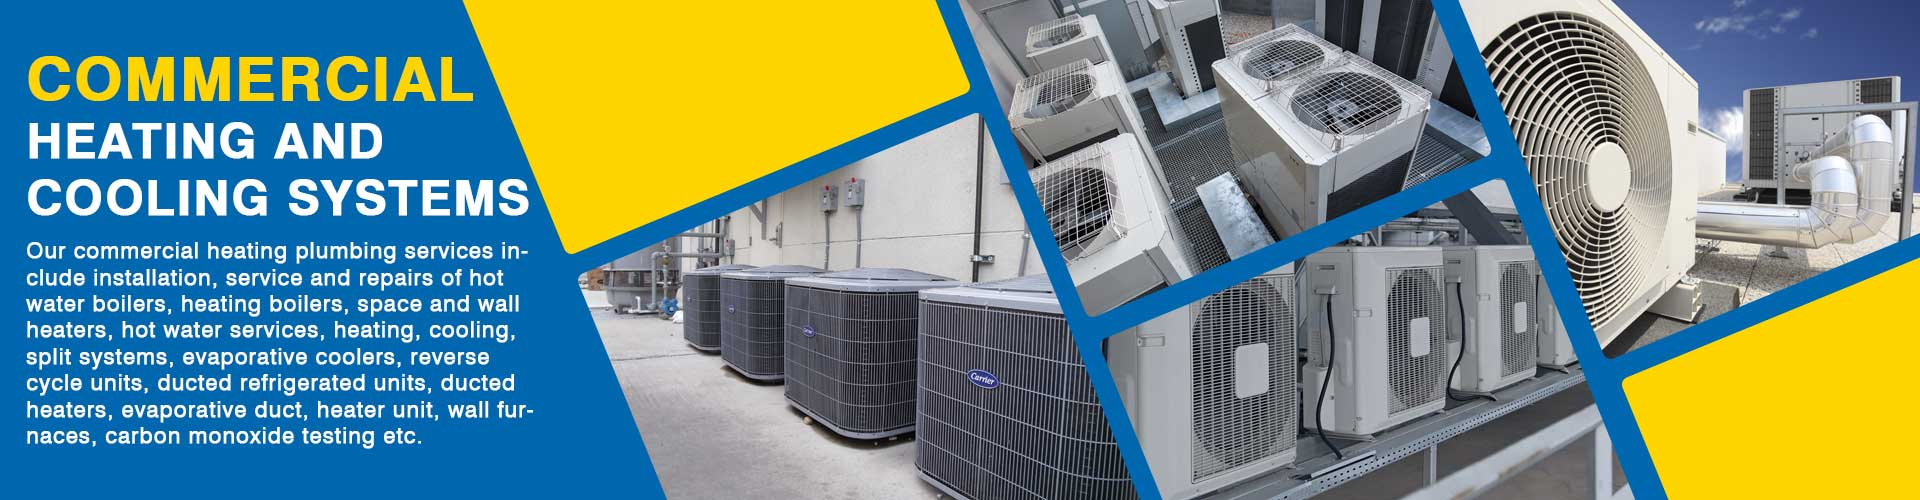 Commercial-Heating-and-Cooling-Systems-Melbourne-1.jpg